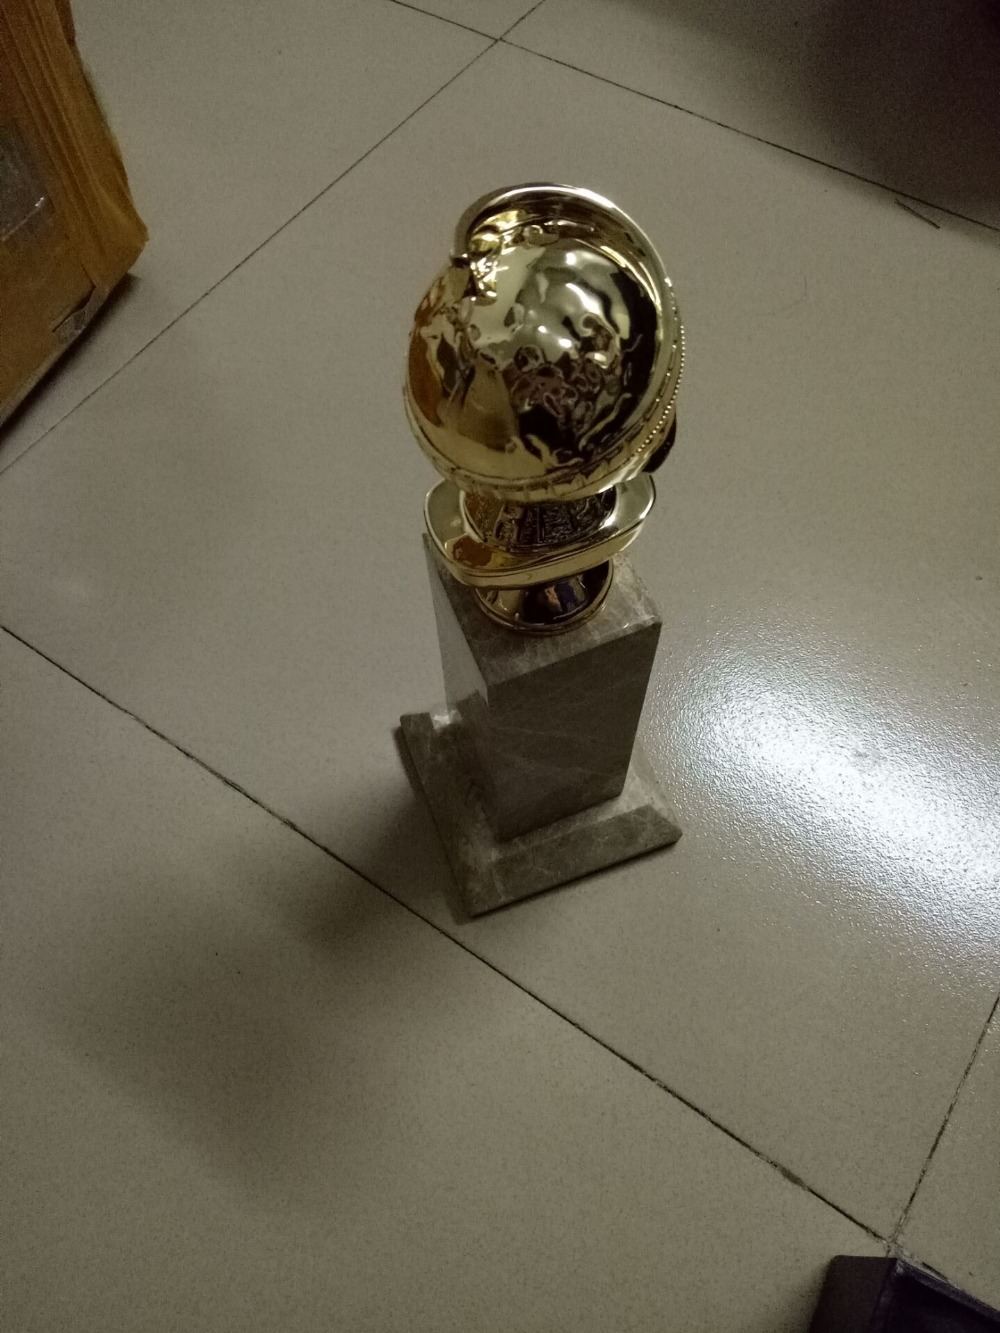 Top quality base and globe Zinc Alloy Golden Globe Awards Replica Golden Globe Trophy 10 Inches Free Shipping real size trophy